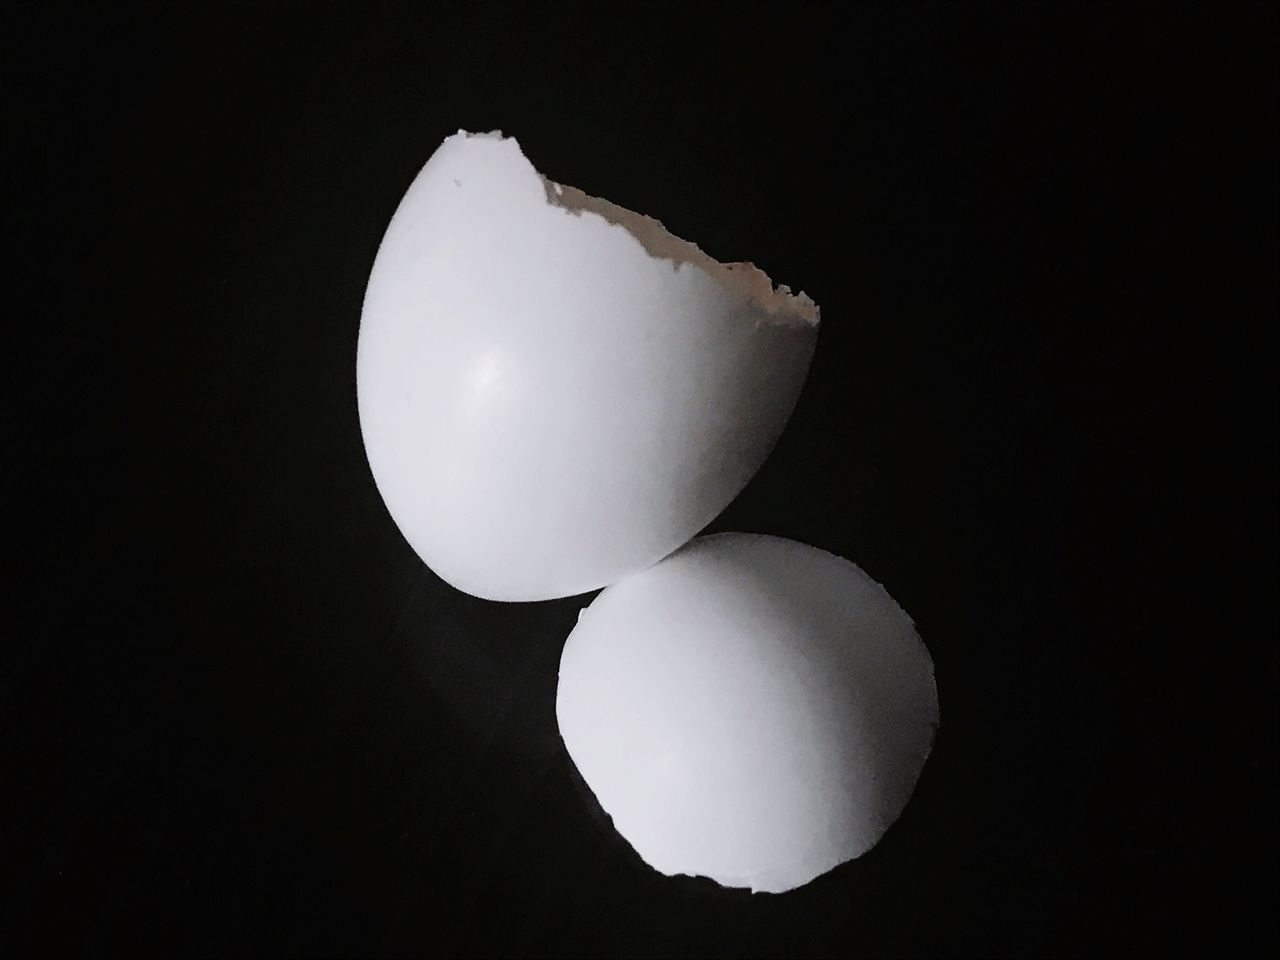 Found Object Simplicity Birds Egg Egg Shell Broken Small Black Background Fragility Close-up White Negative Space